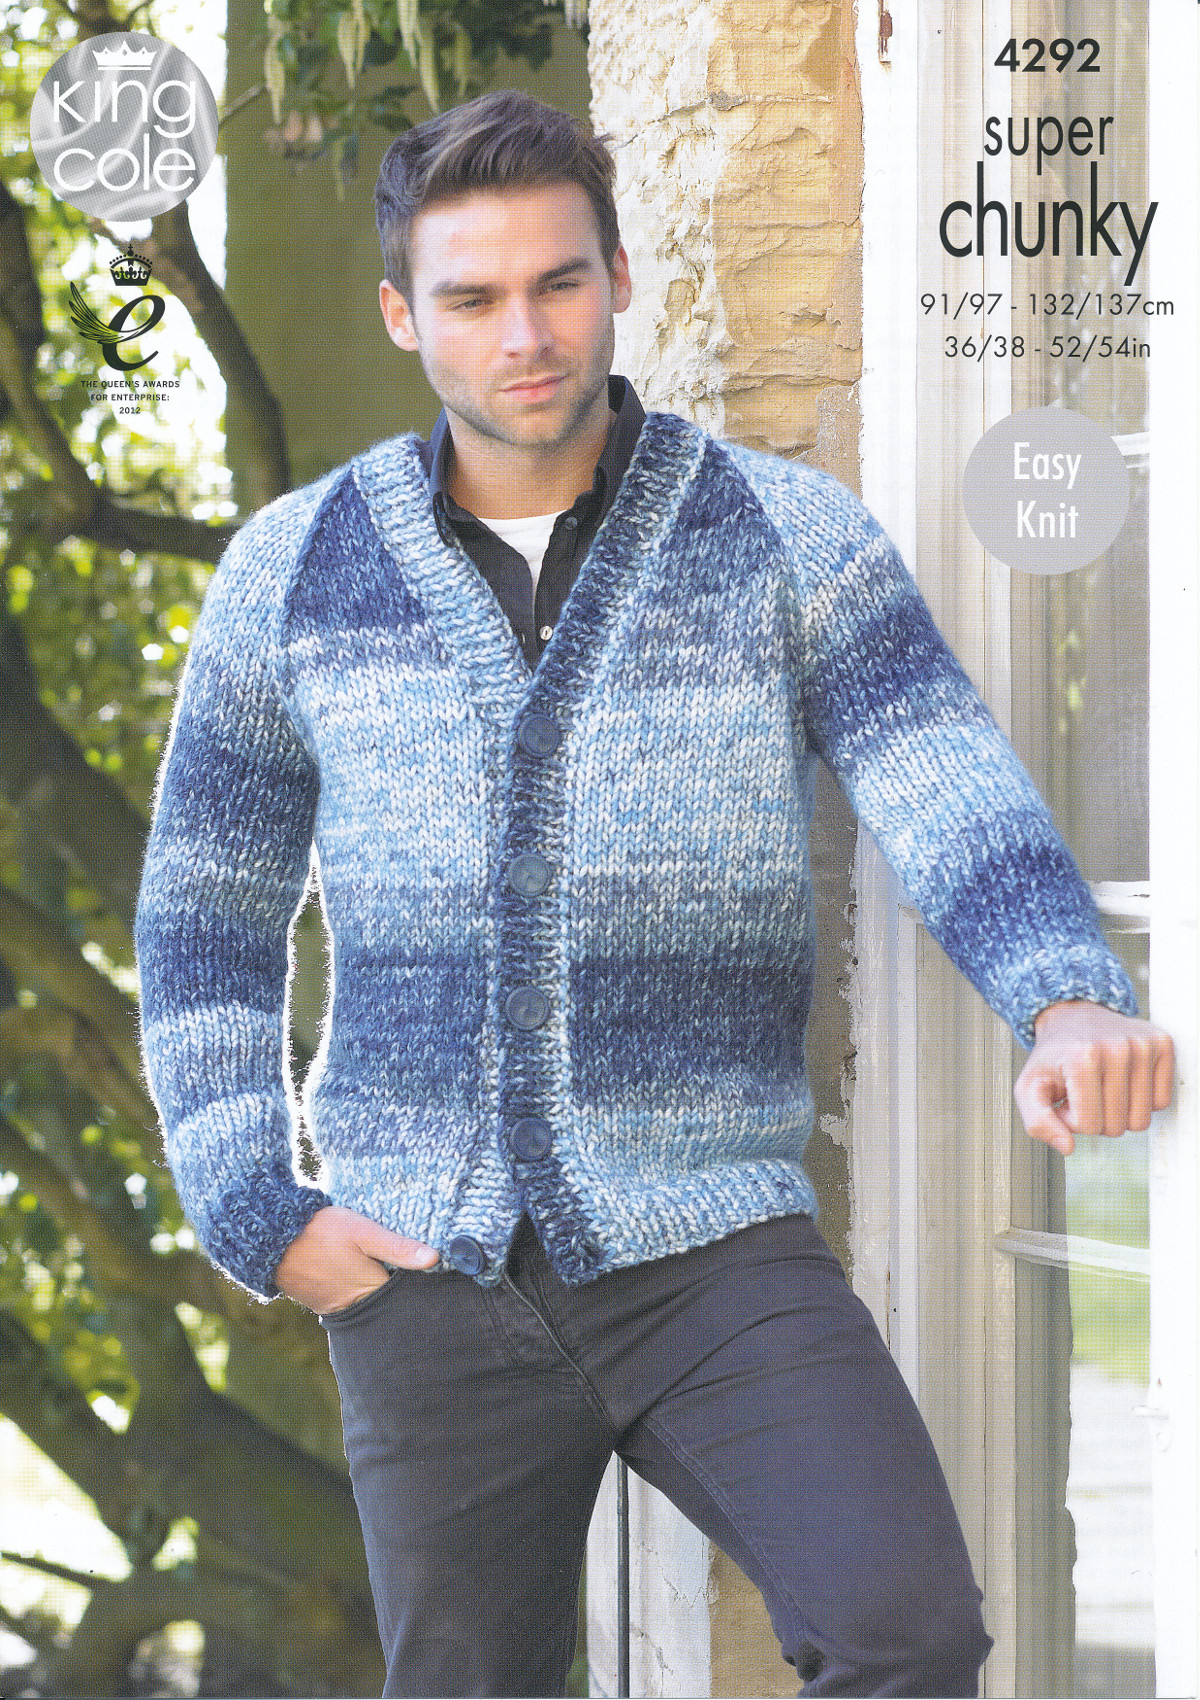 Mens Knit Patterns Details About Mens Super Chunky Knitting Pattern King Cole Easy Knit Jumper Cardigan 4292